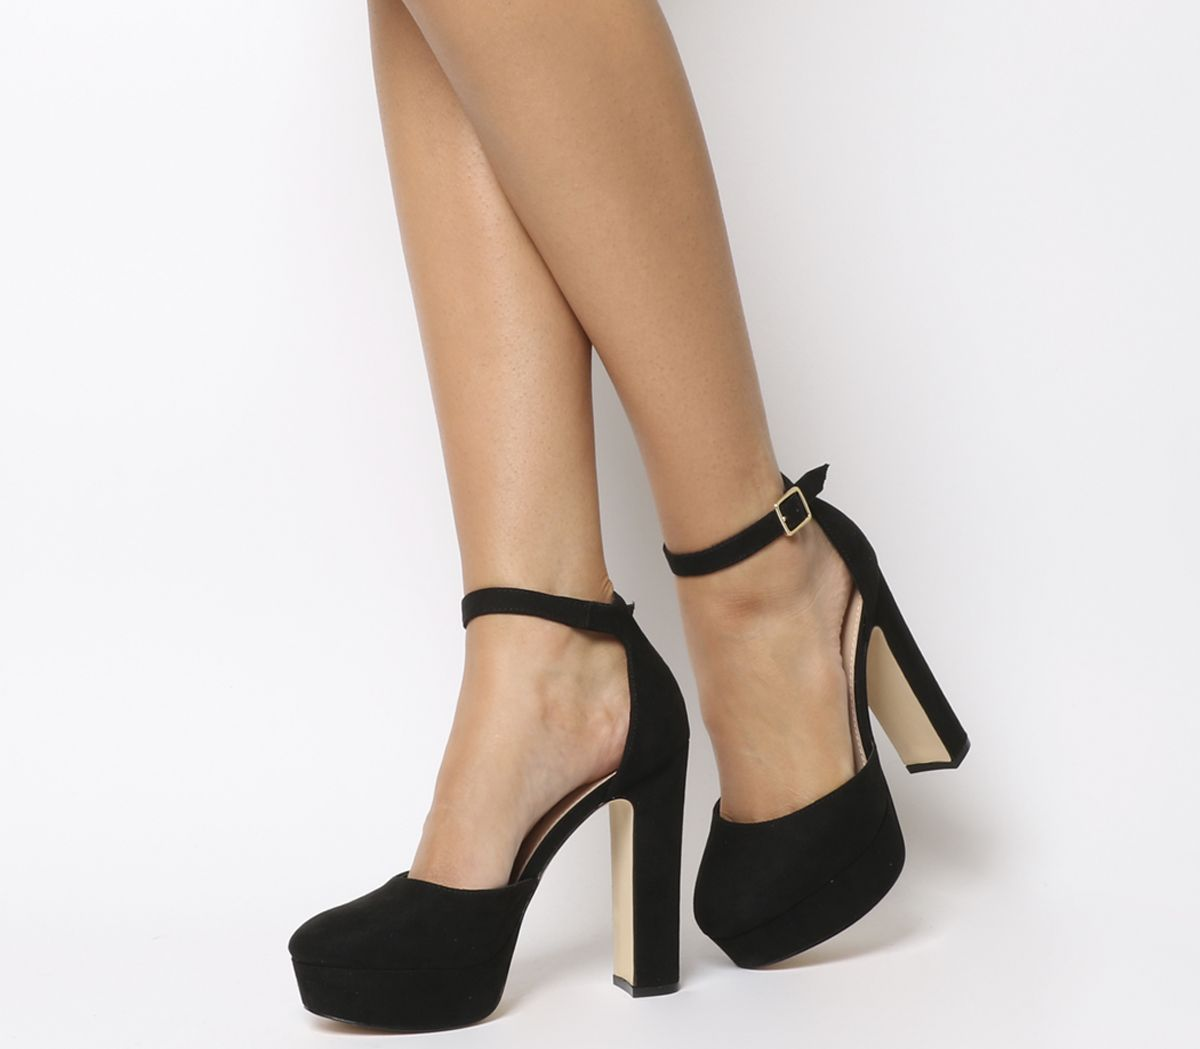 Hatch Closed Toe Platform Heels